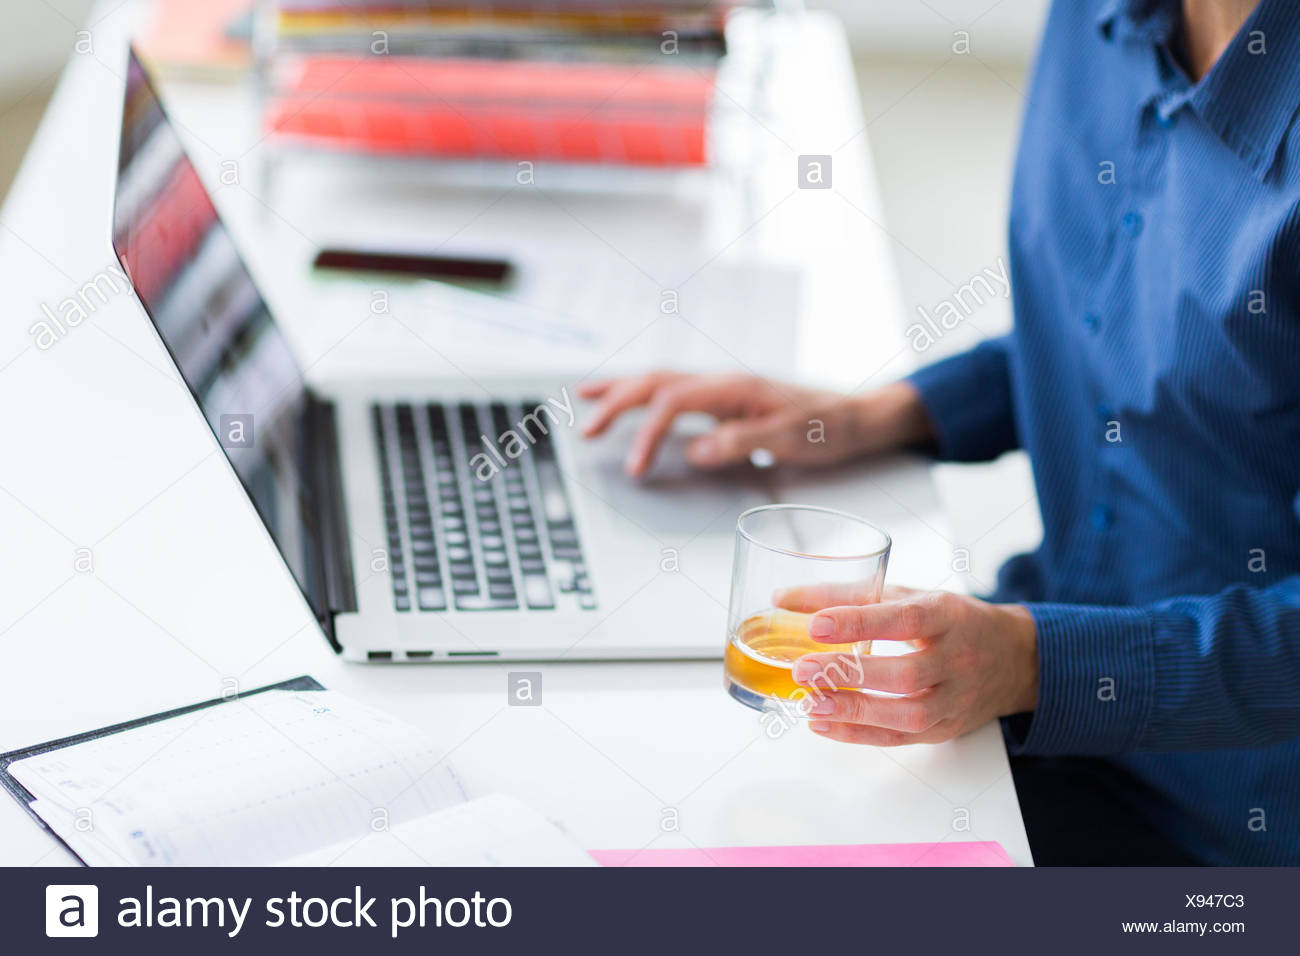 Alcool potable employé de bureau. Photo Stock